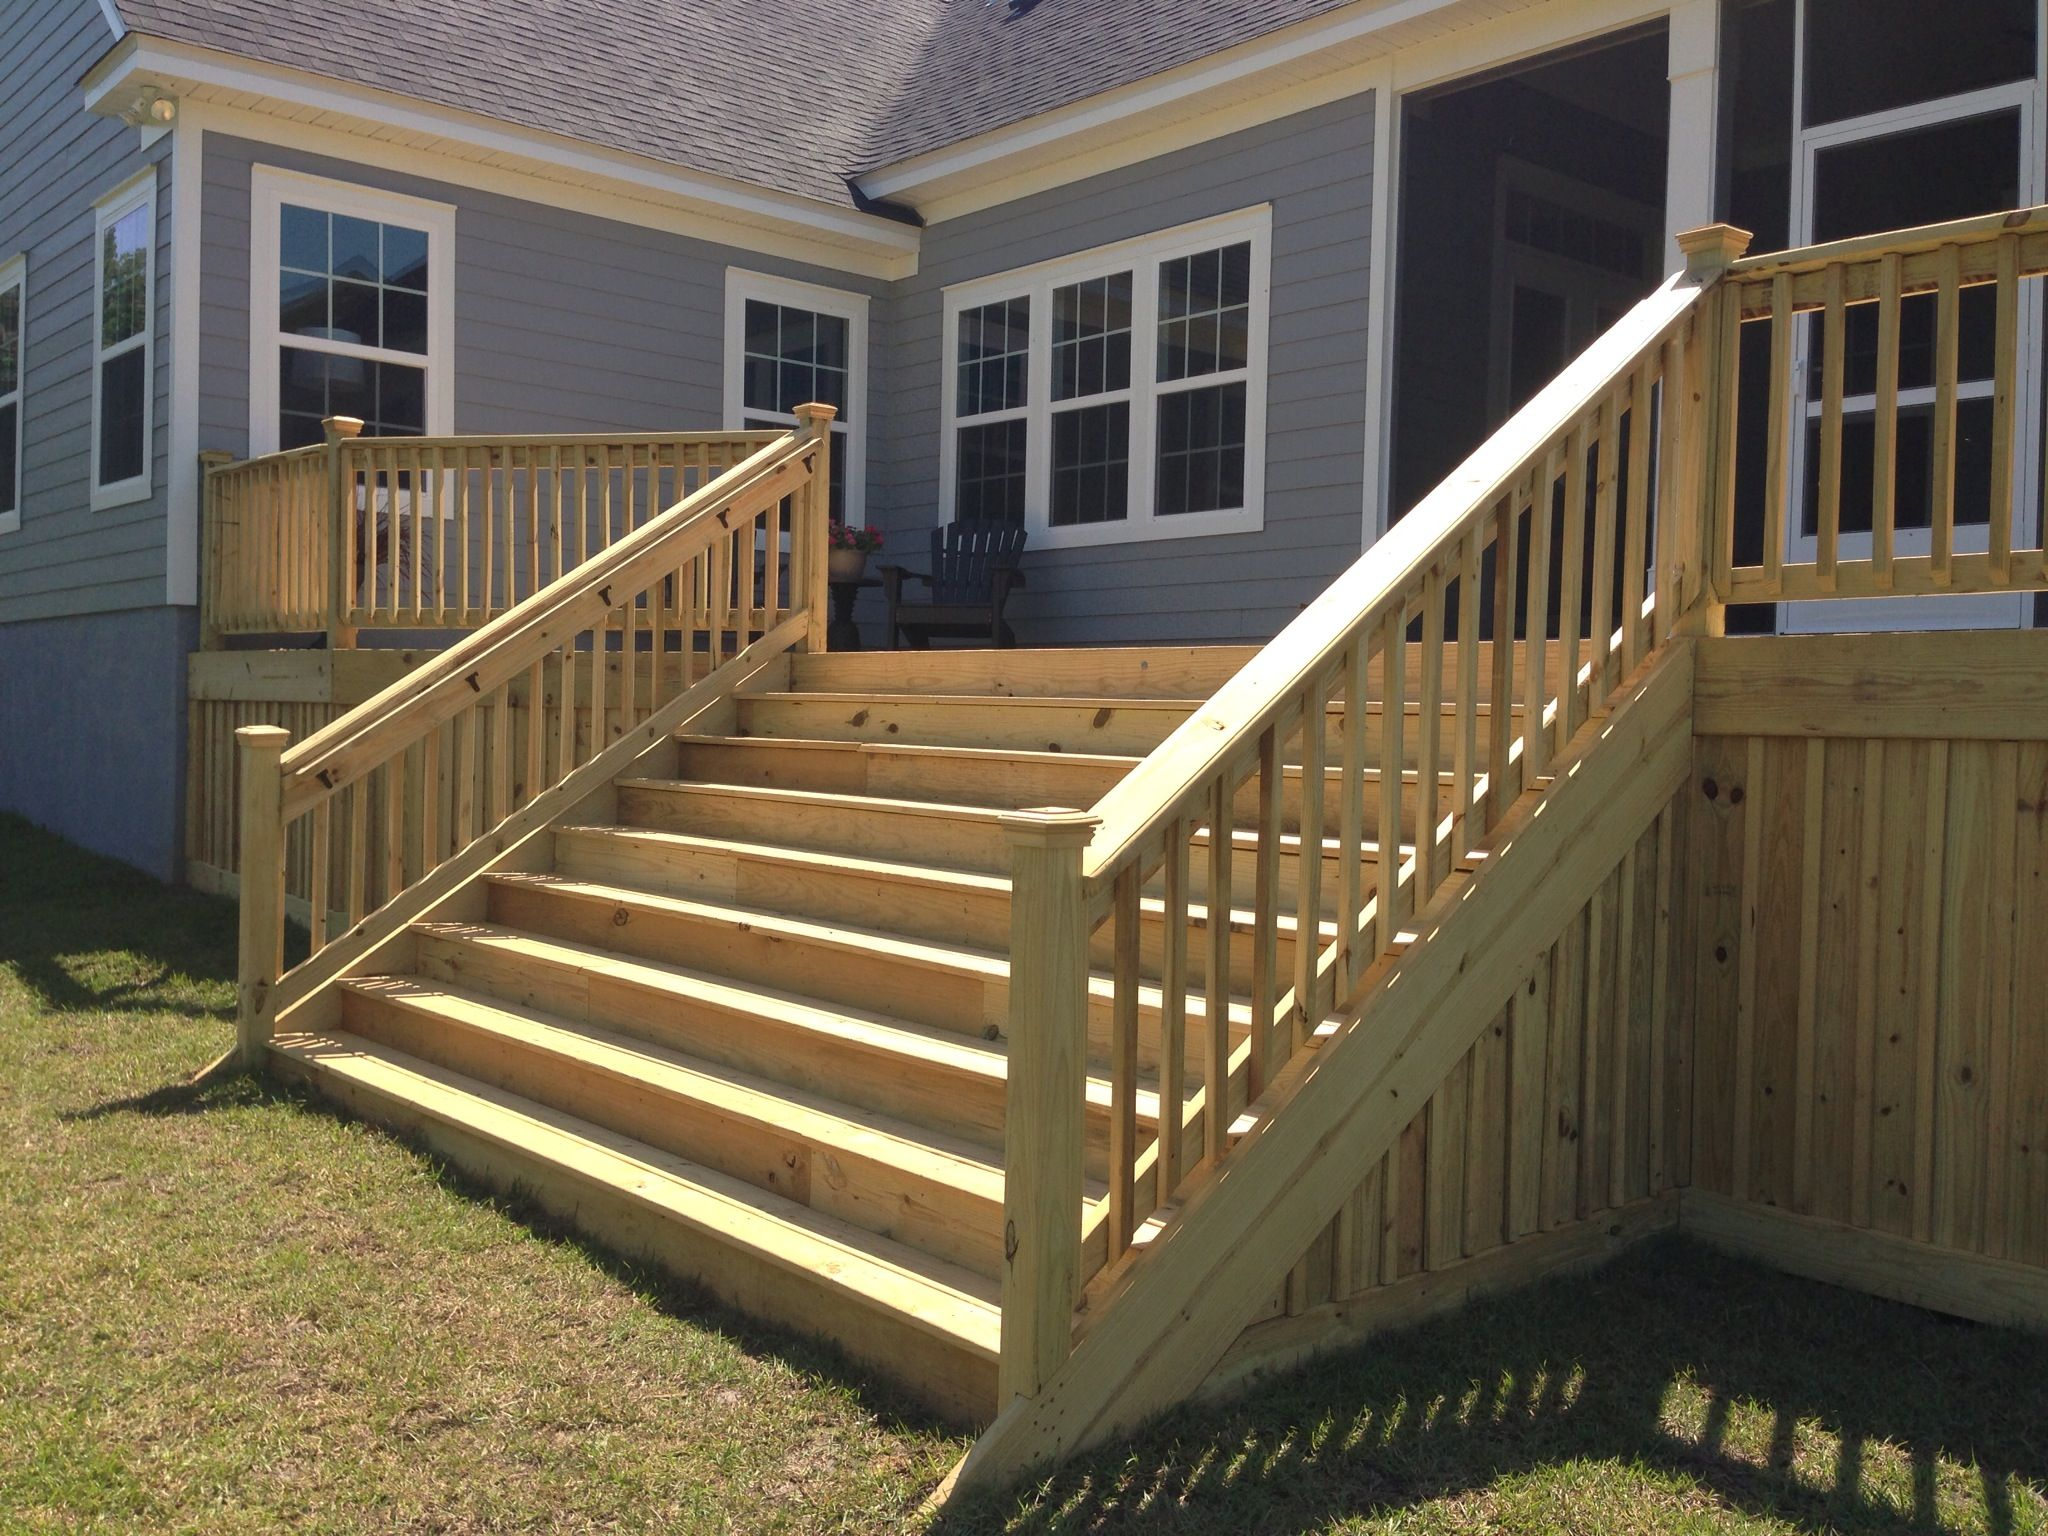 26 Most Stunning Deck Skirting Ideas To Try At Home Deck | Pressure Treated Deck Stairs | Flared | 5 Foot | Landing | Pre Built | Simple